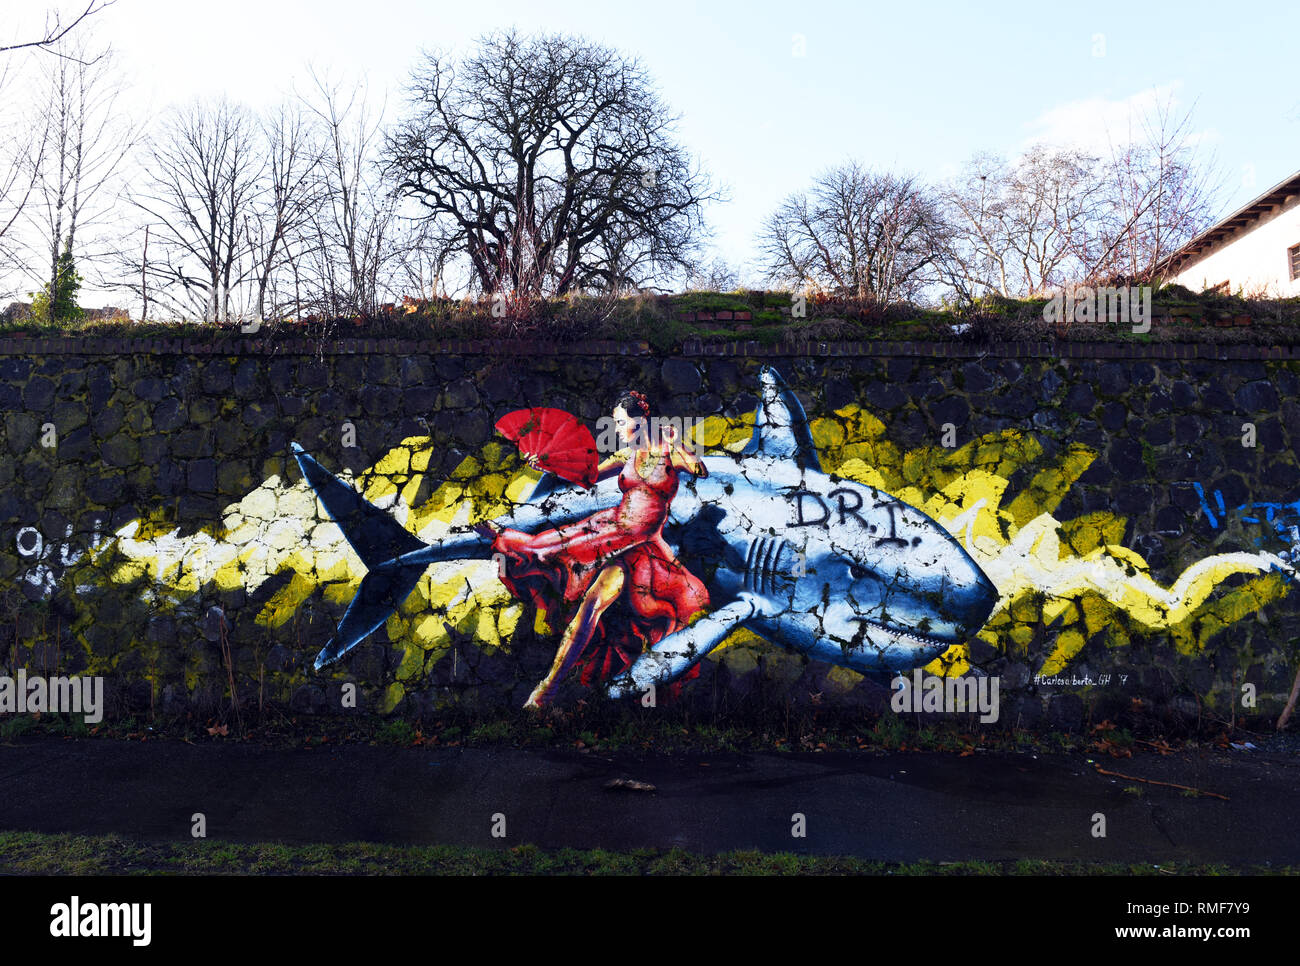 Krefeld, Germany. 11th Feb, 2019. 'Street Art Art' on a wall on the banks of the Rhine in the district of Uerdingen, which was created by the street art artist 'Carlos Alberto Rocio' as part of the 'Rhine Side Gallery 2018' event of the city of Krefeld. Credit: Horst Ossinger/dpa/Alamy Live News - Stock Image